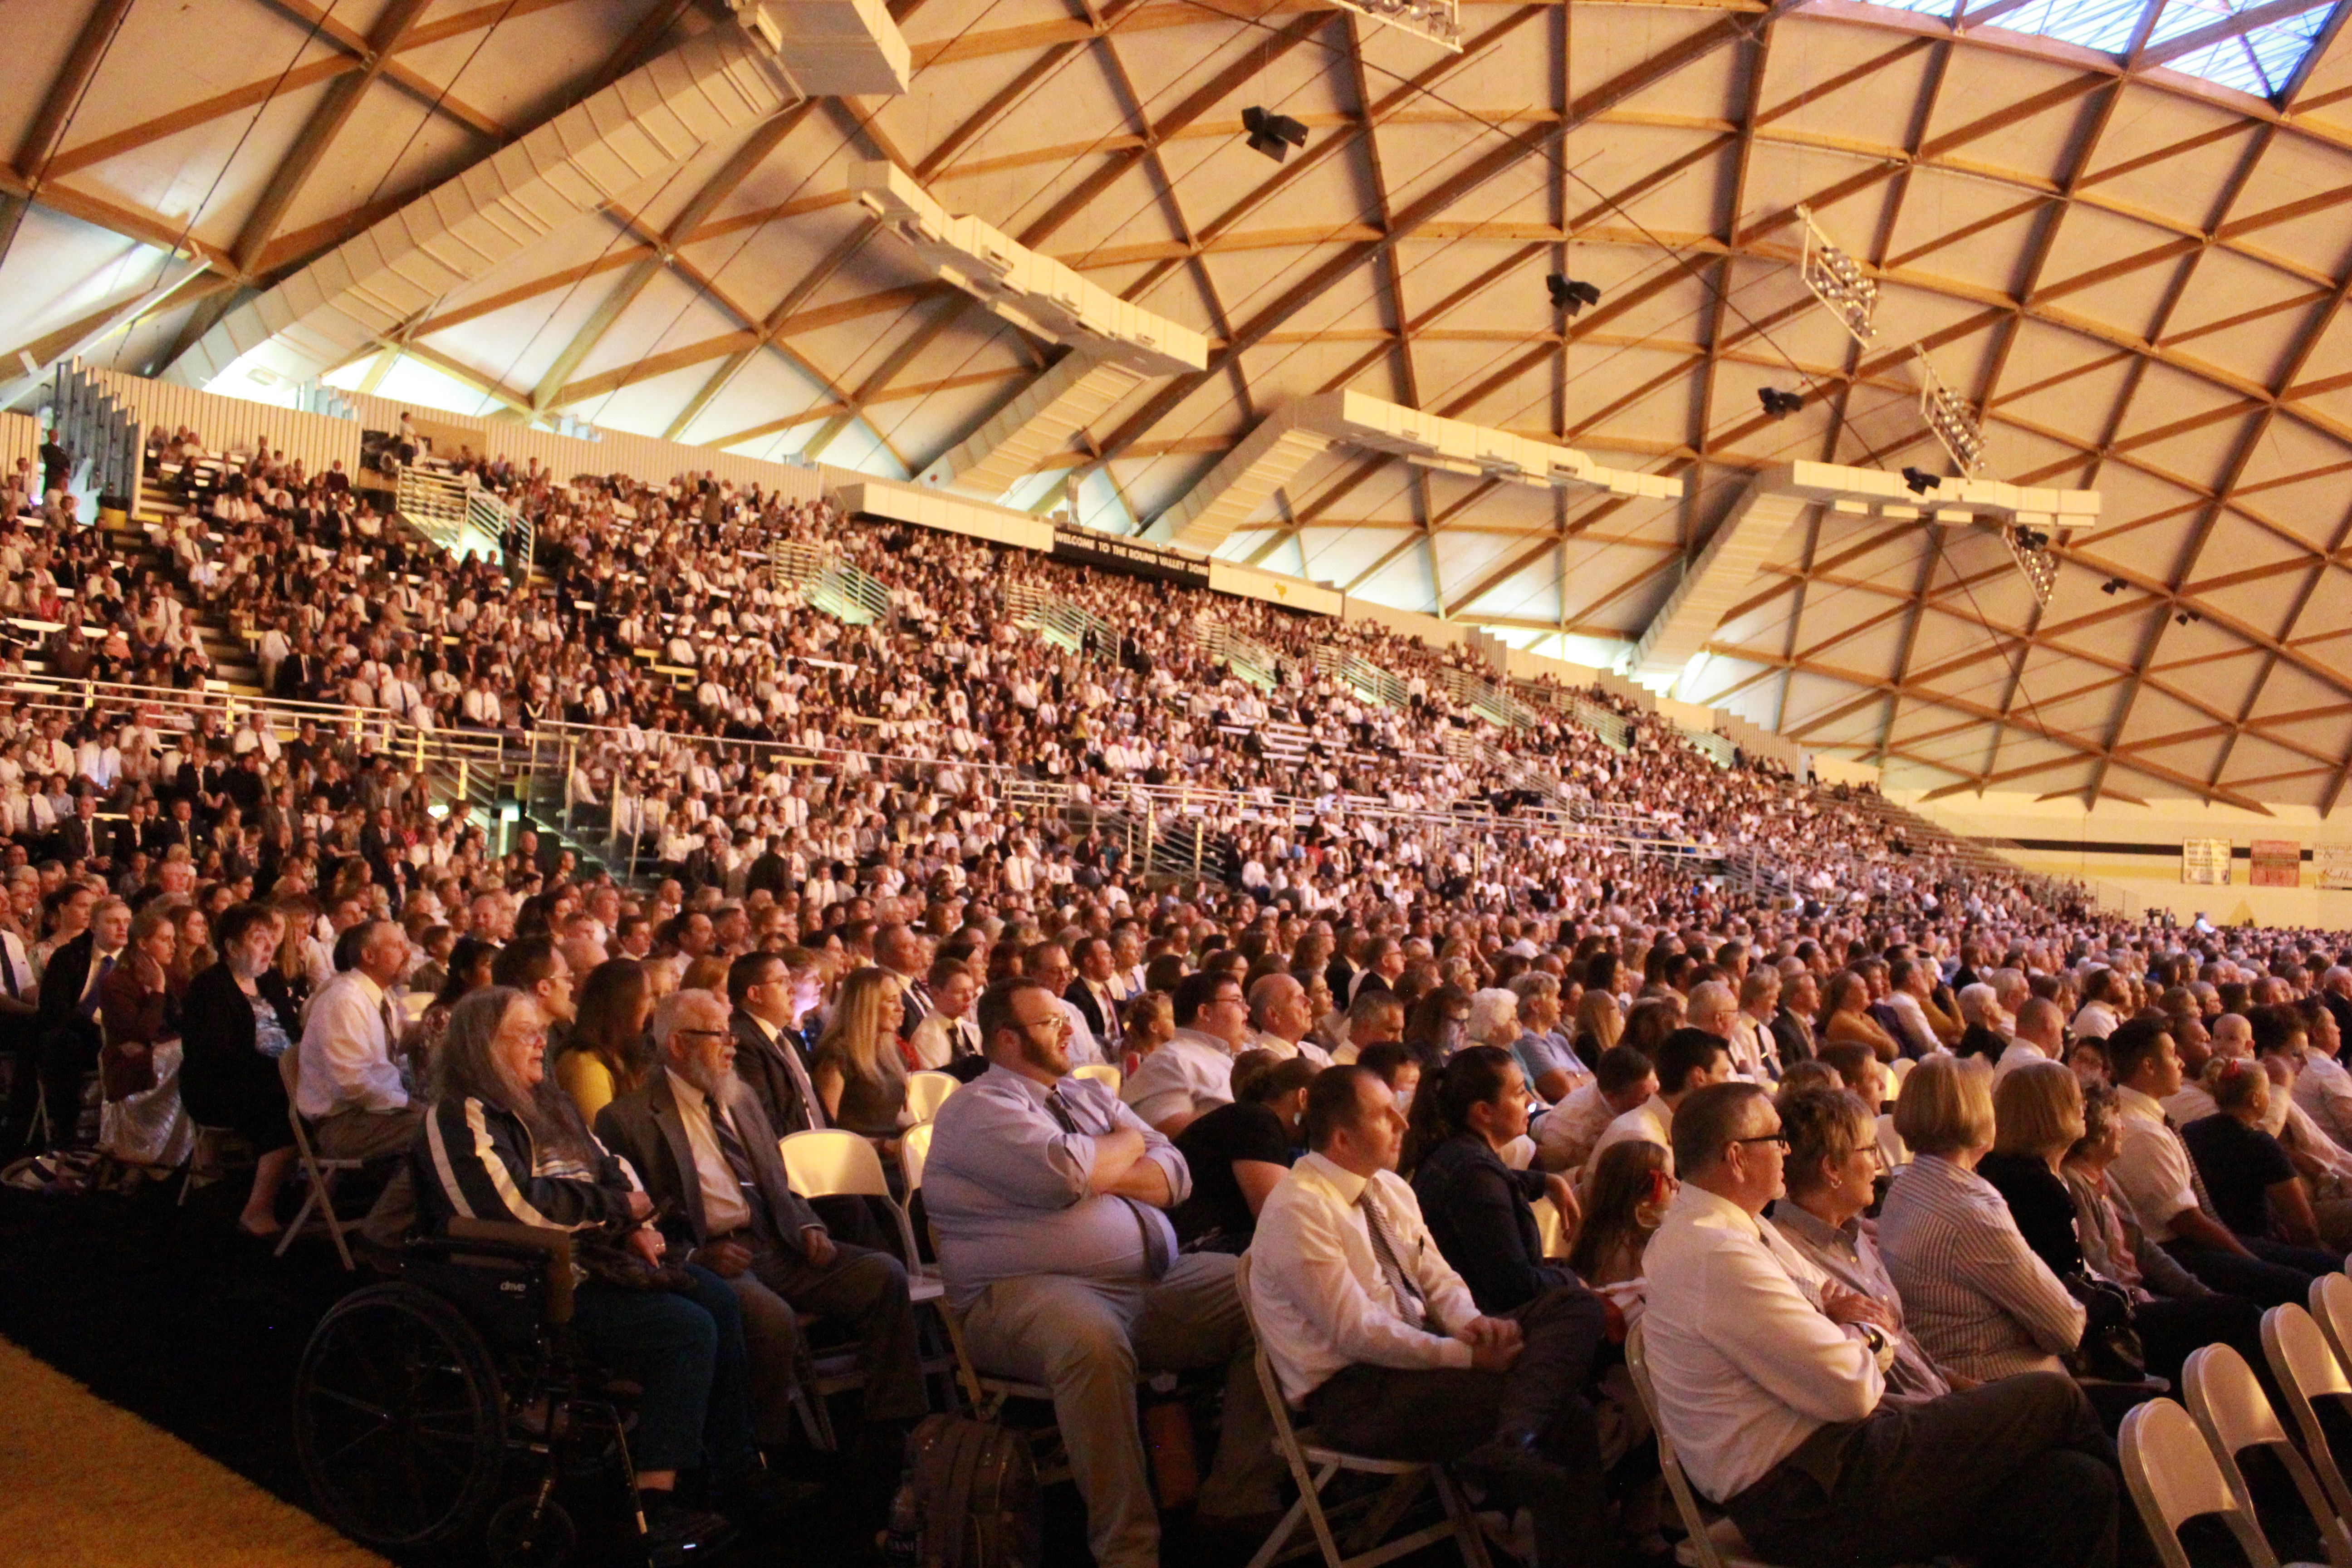 Some 8,500 members attended a devotional in the Round Valley Dome in Eagar, Ariz.